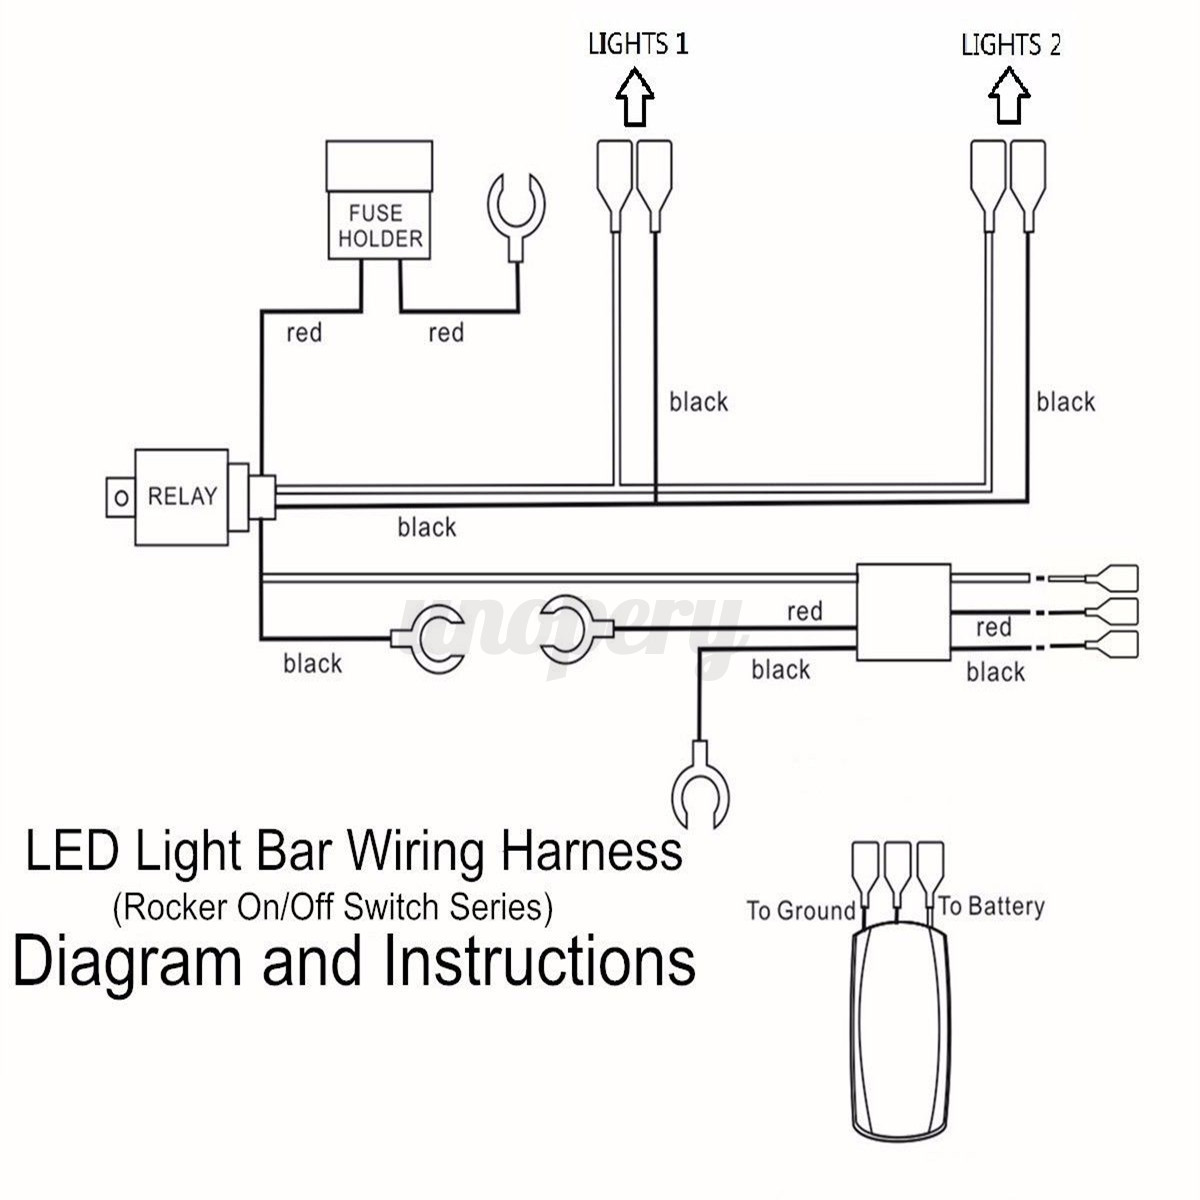 wiring diagram for 12v led switch 1997 ford f150 ac harness cable light bar laser rocker